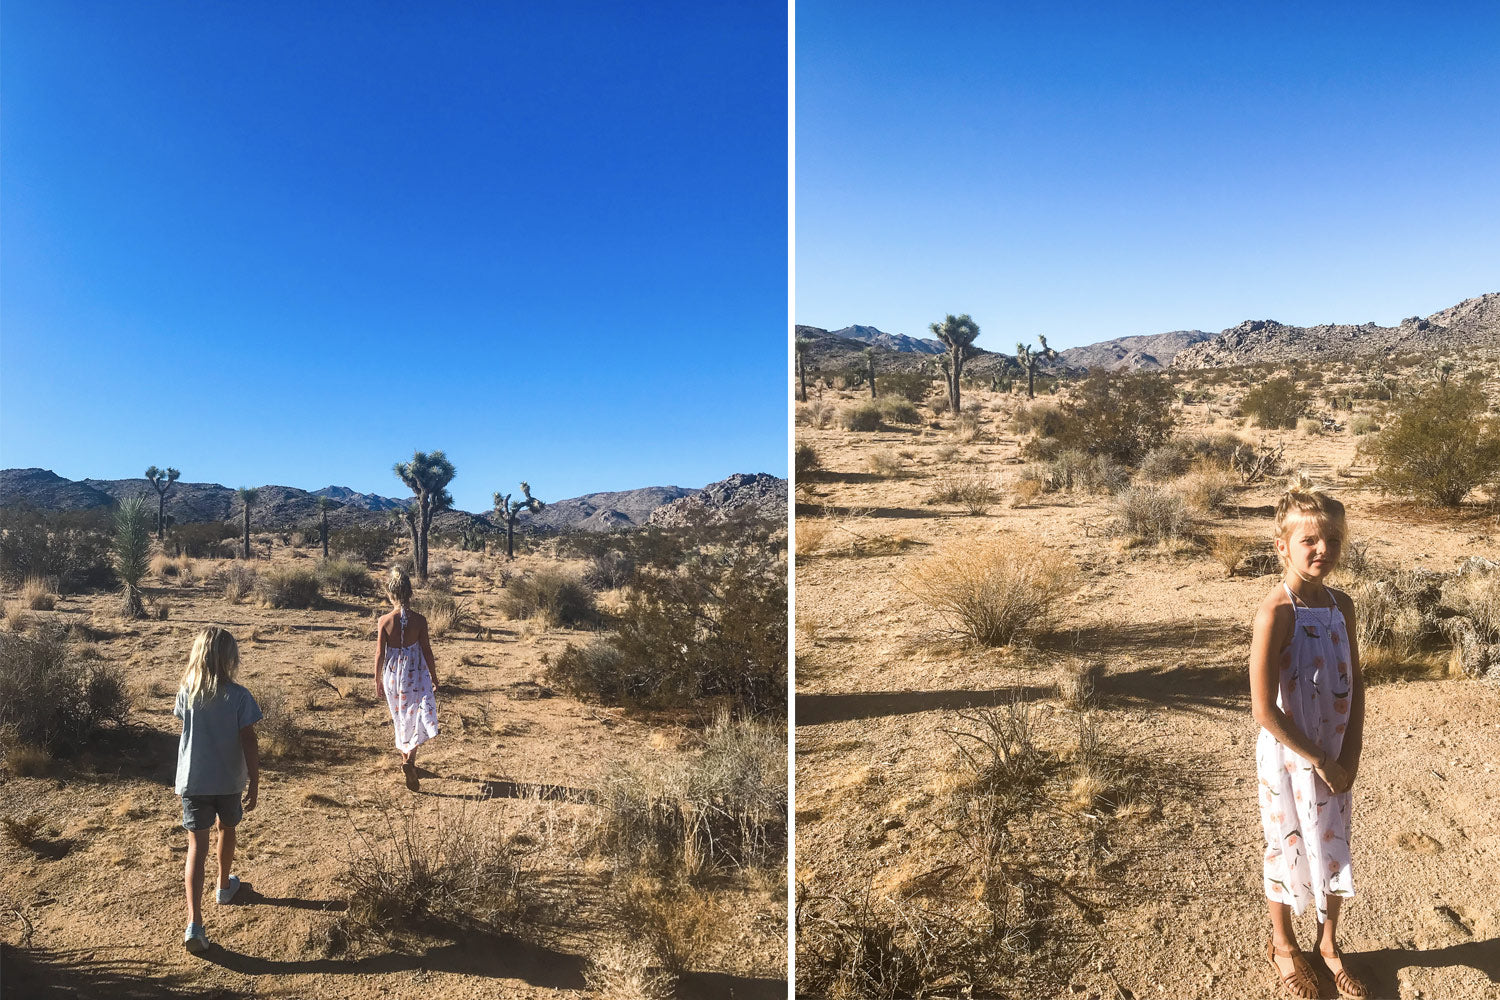 Daisy and Cruz Free in Joshua Tree